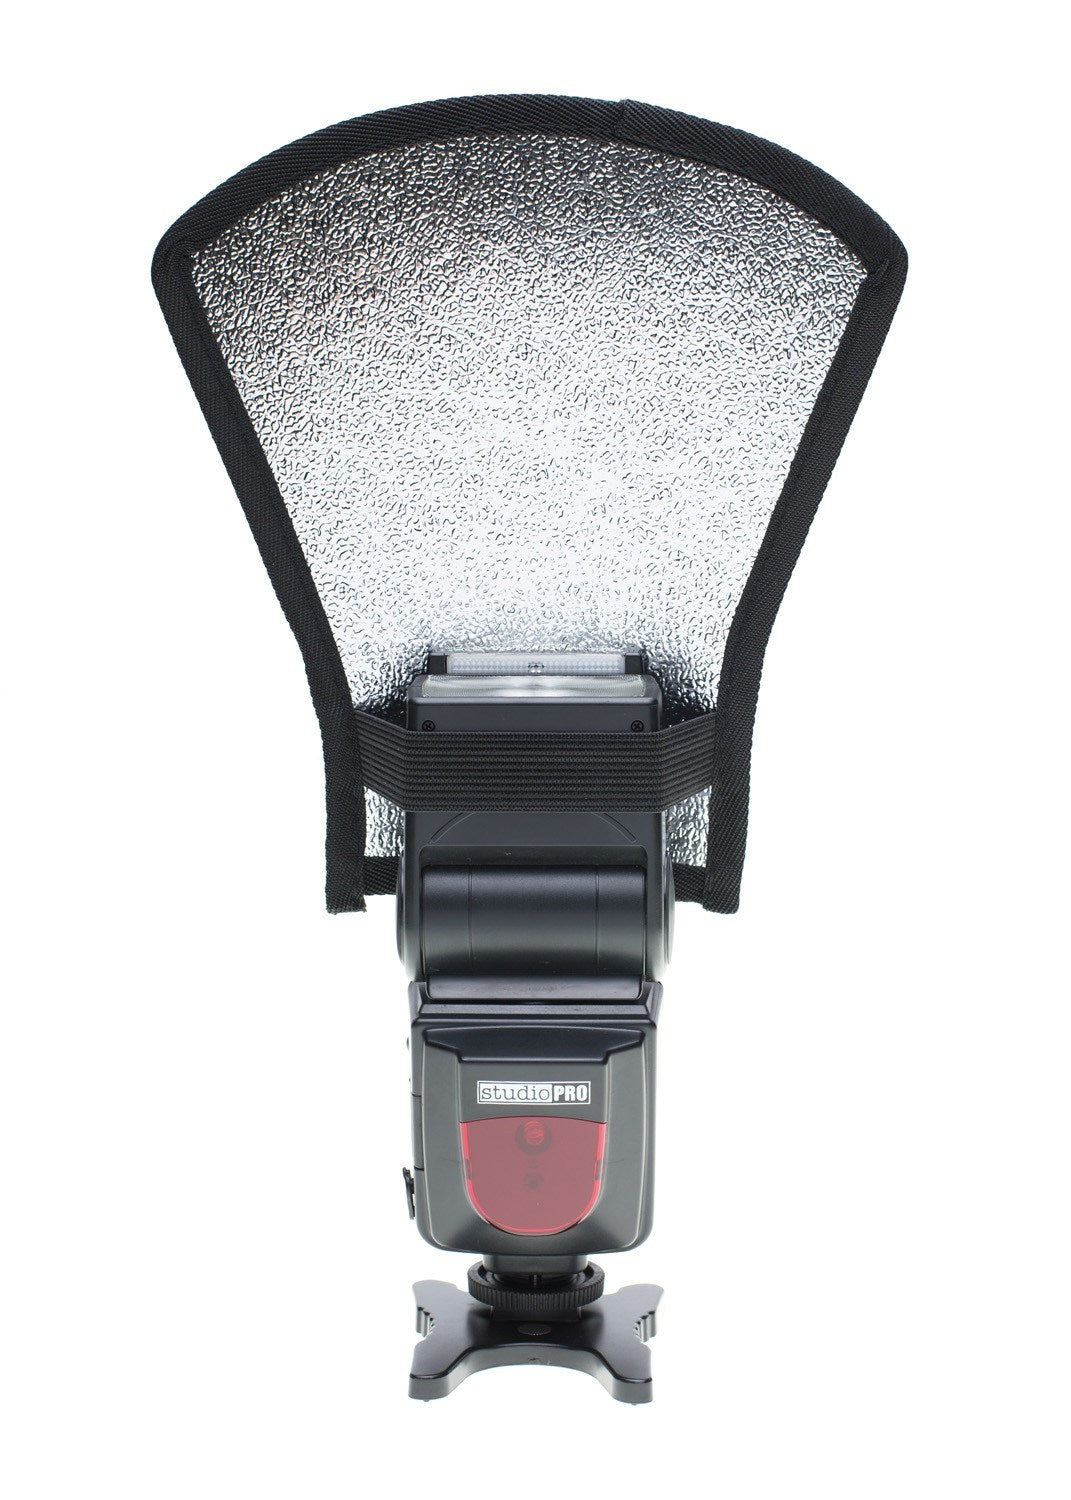 StudioPRO Two Side Flash Diffuser Reflector Silver/White For Speedlite -  - 3